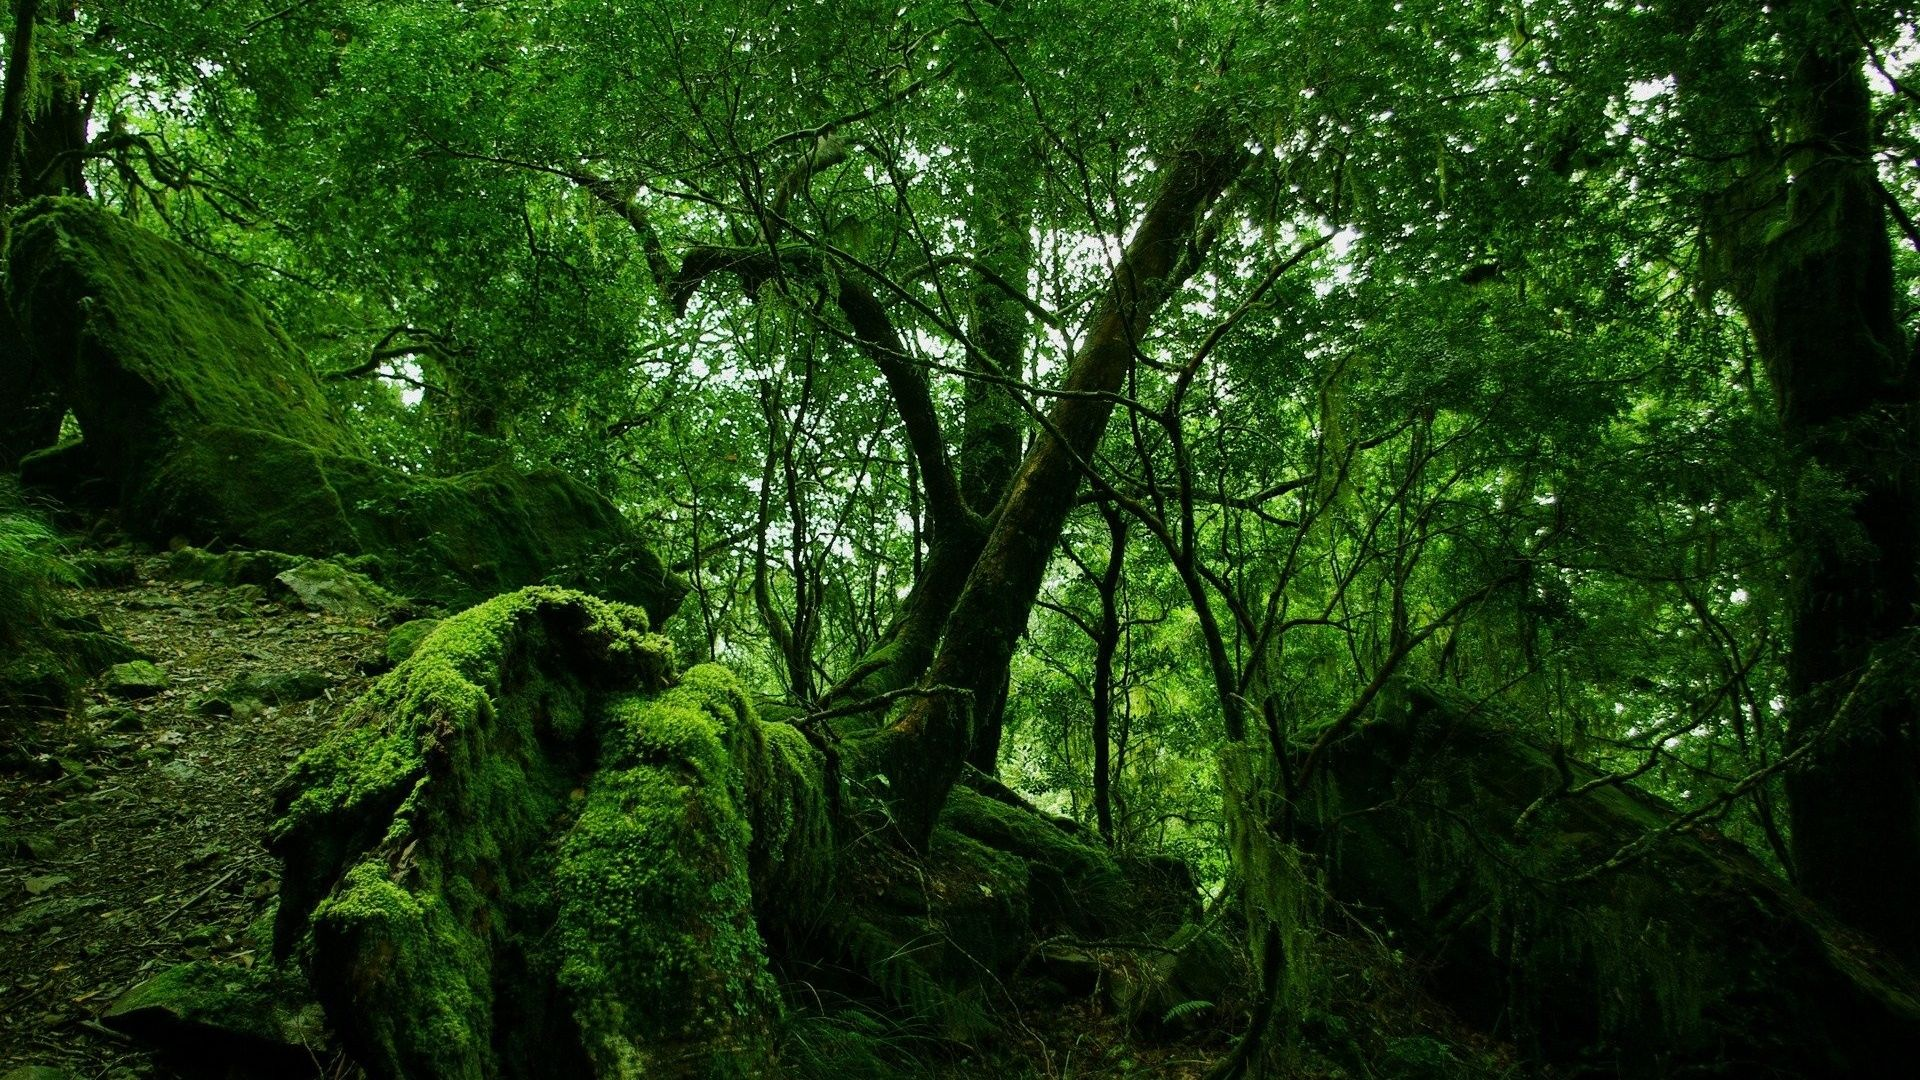 Green Forest Vegetation Wallpaper 1920x1080 Need Iphone 6s Plus Wallpaper Background For Iphone6splu Forest Wallpaper Jungle Wallpaper Nature Wallpaper